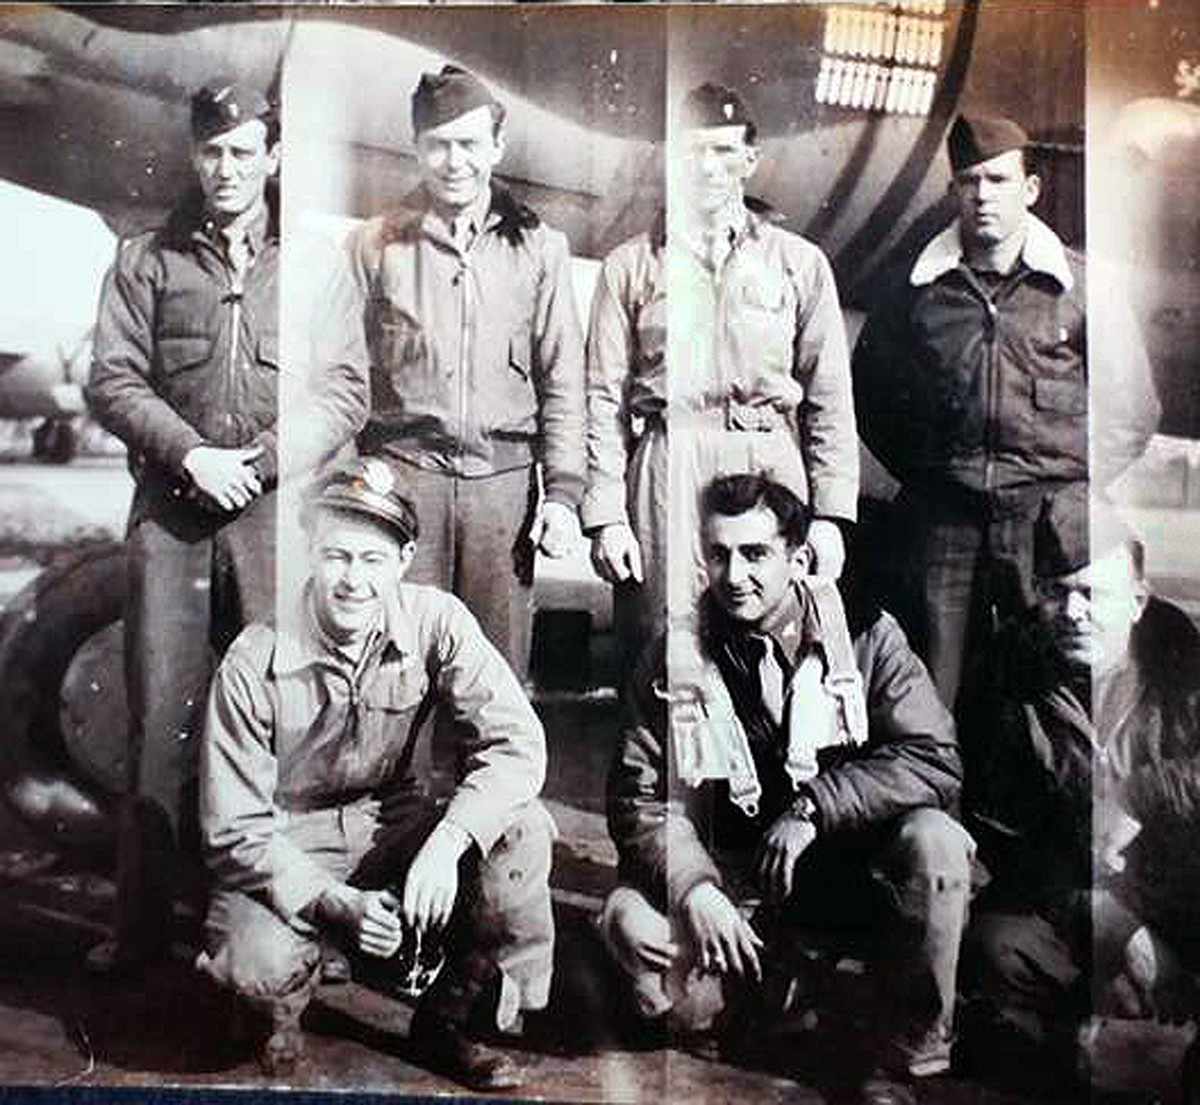 1st Lt. Robert Warda crew split